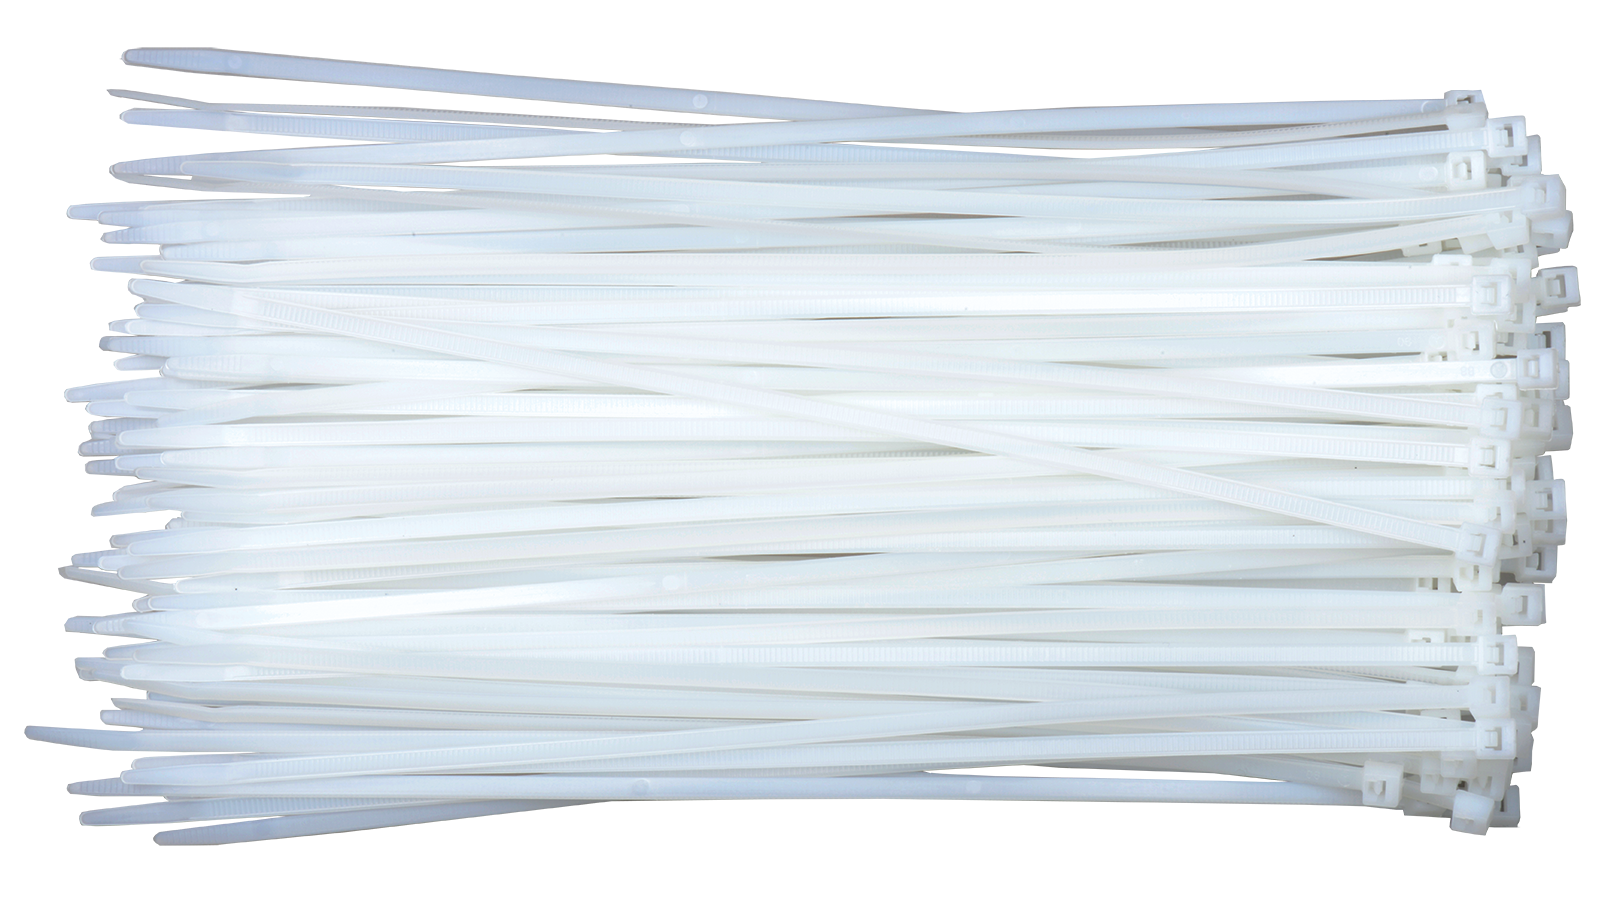 396de5409dbd CT-8 - Cable Tie white Nylon 66 UL listed